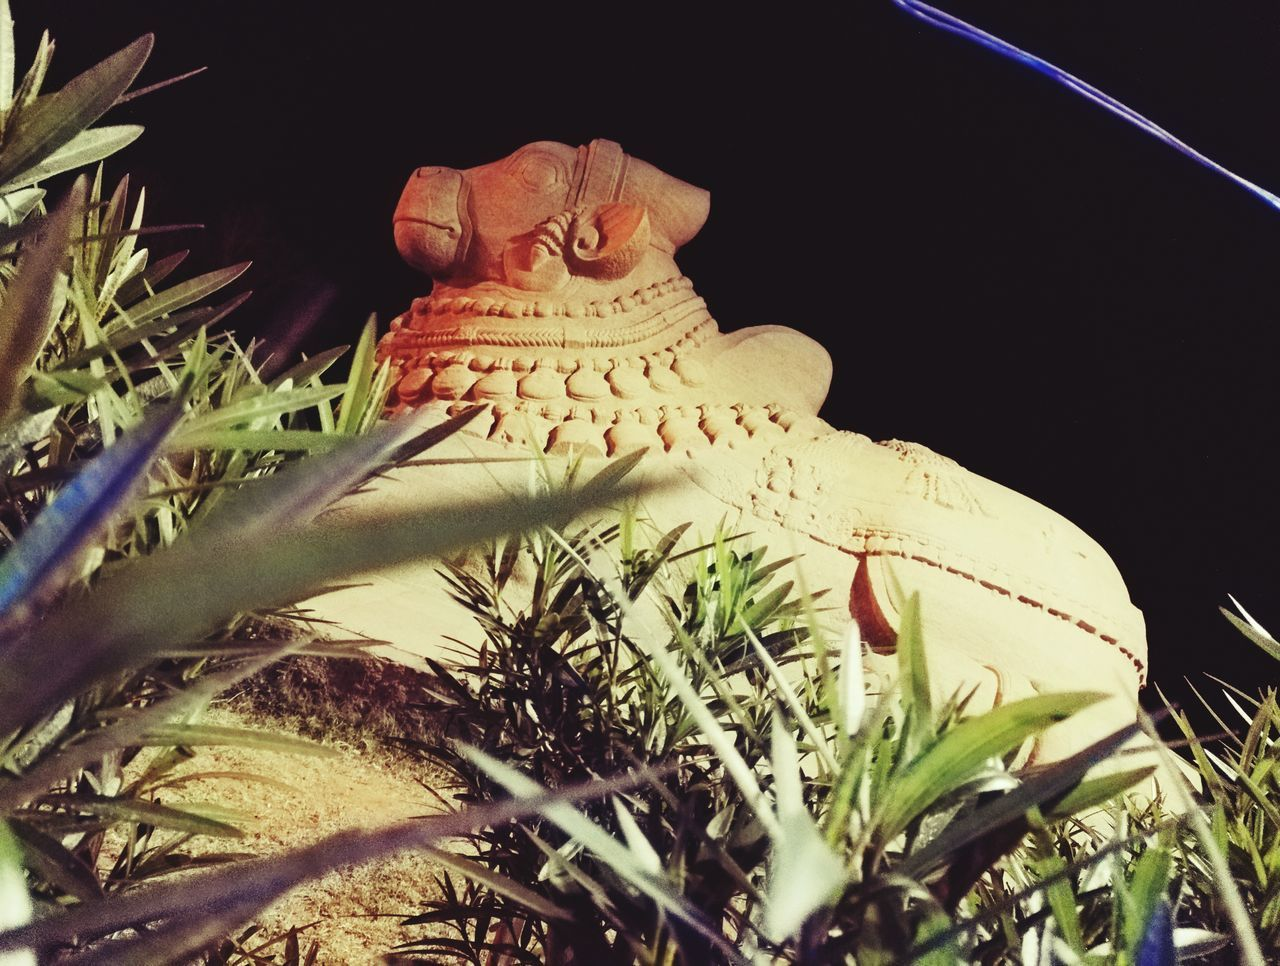 No People Growth Low Angle View Outdoors Nature Night Close-up Bull Statue Night Out Memories Love And Passion Of Photography EyeEm Best Shots EyeEm Gallery